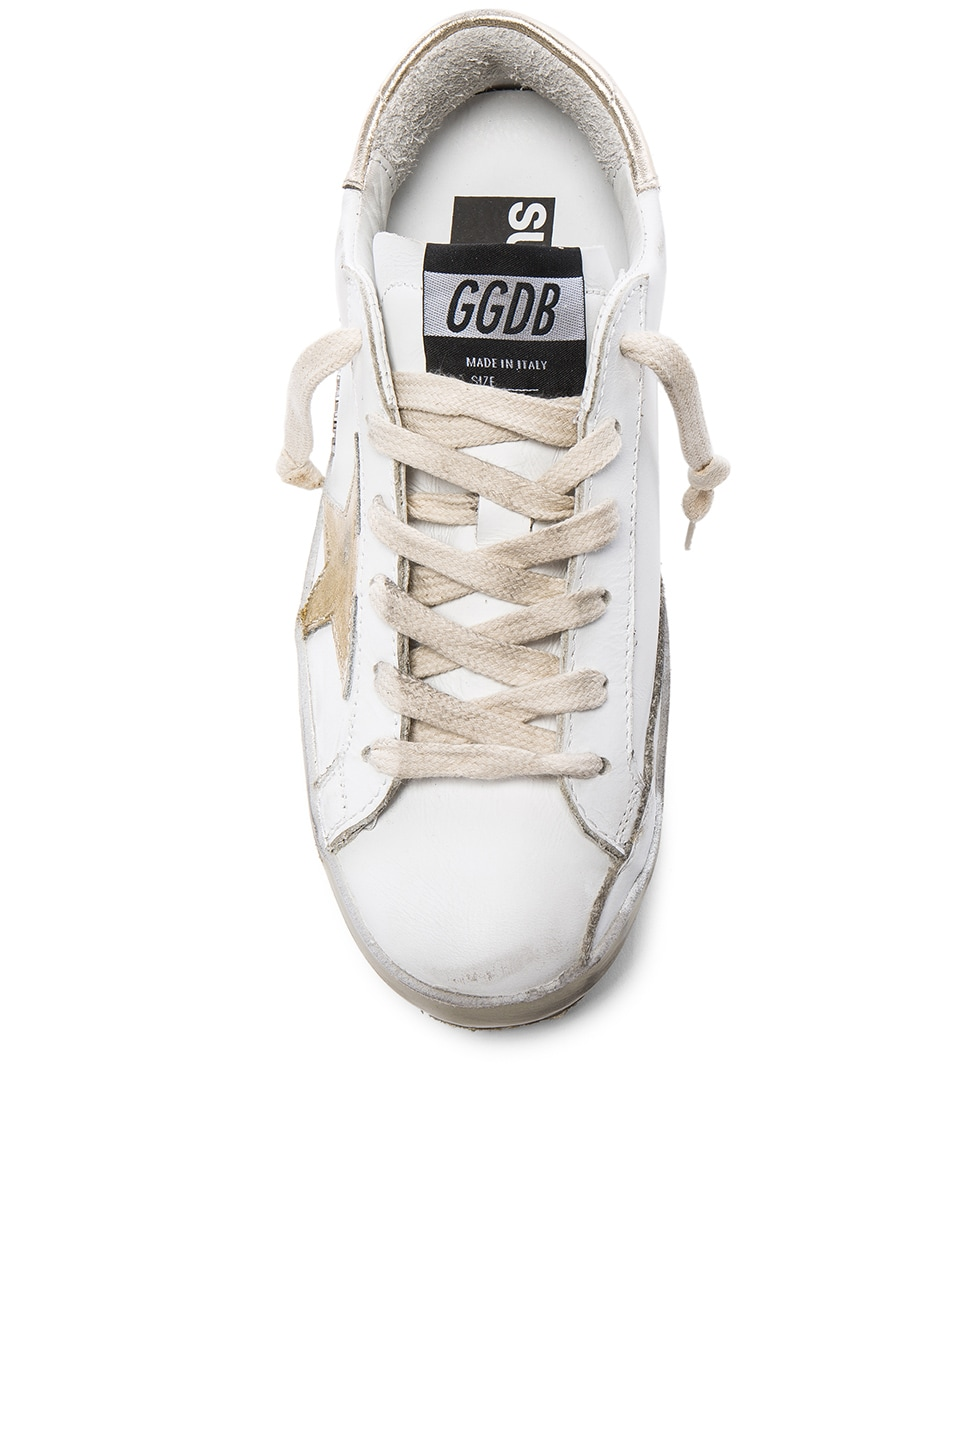 Image 4 of Golden Goose Leather Superstar Low Sneakers in Sparkle White & Gold Star